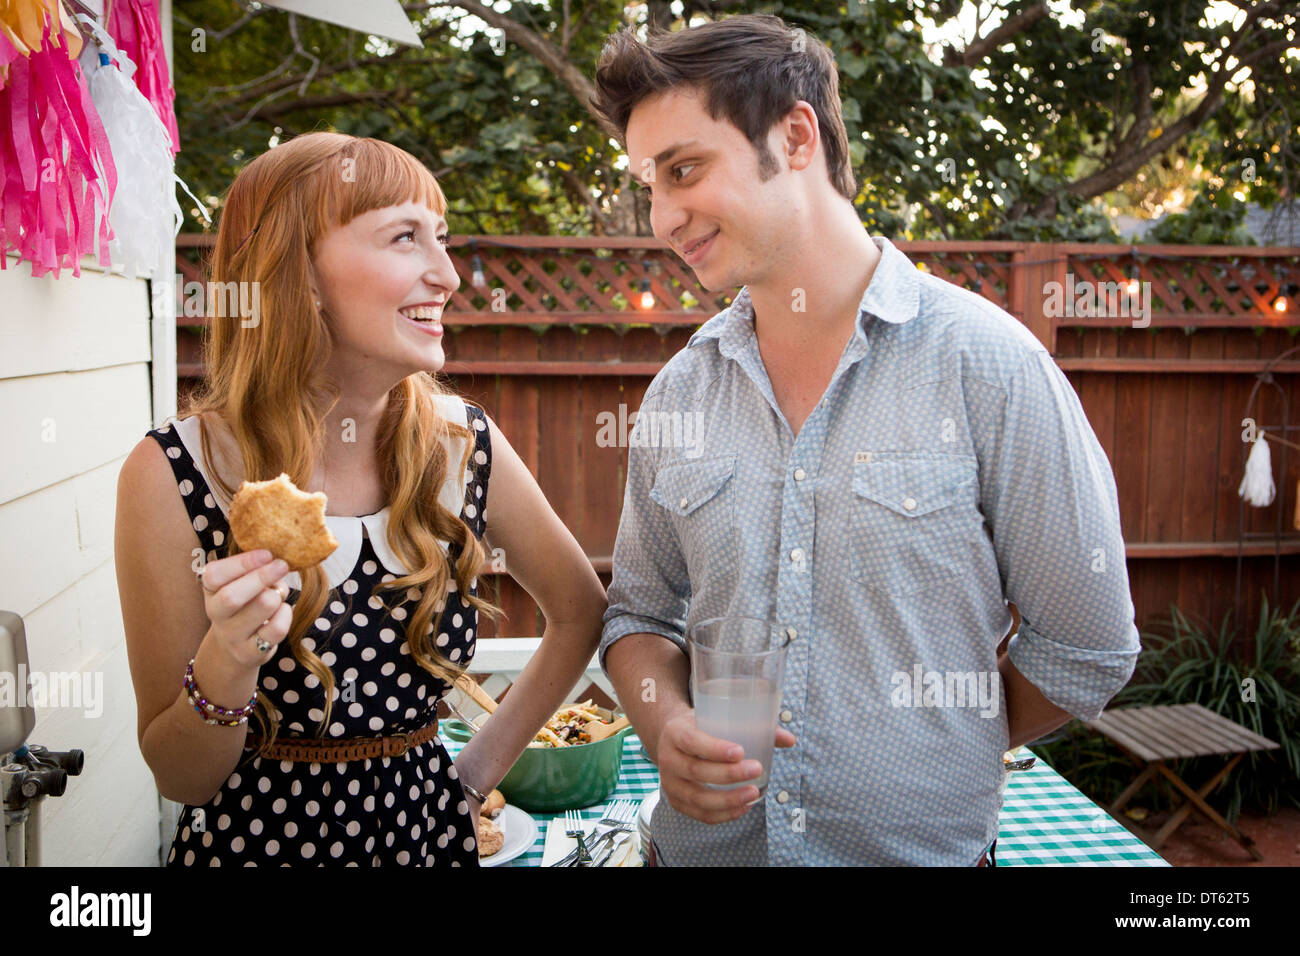 Young couple enjoying picnic lunch in garden - Stock Image